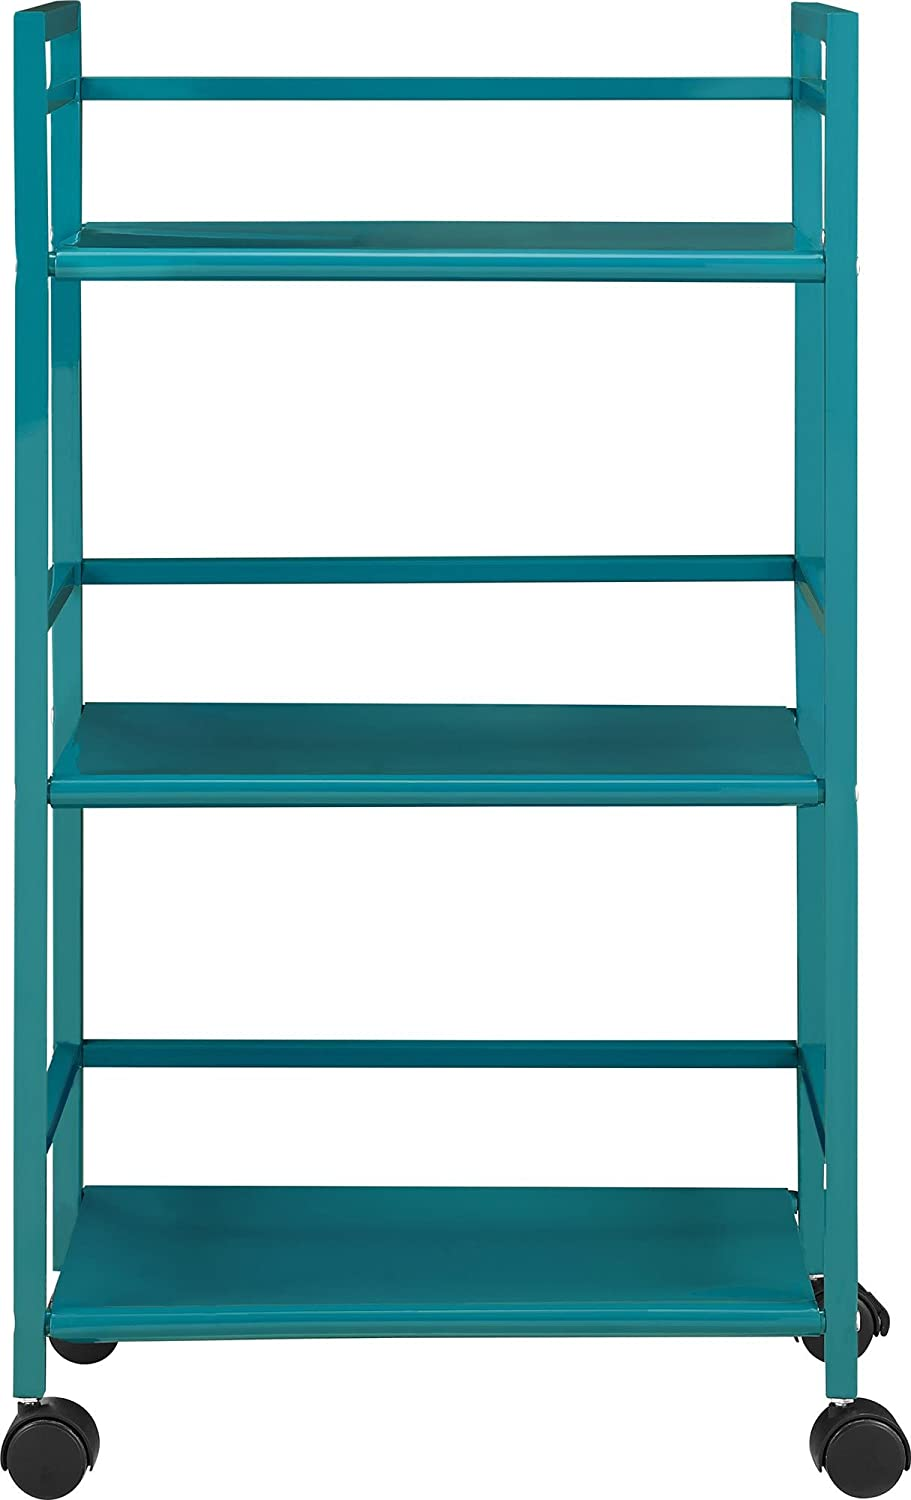 rolling carts for office. Amazon.com: Ameriwood Home Marshall 3 Shelf Metal Rolling Utility Cart, Teal: Kitchen \u0026 Dining Carts For Office L